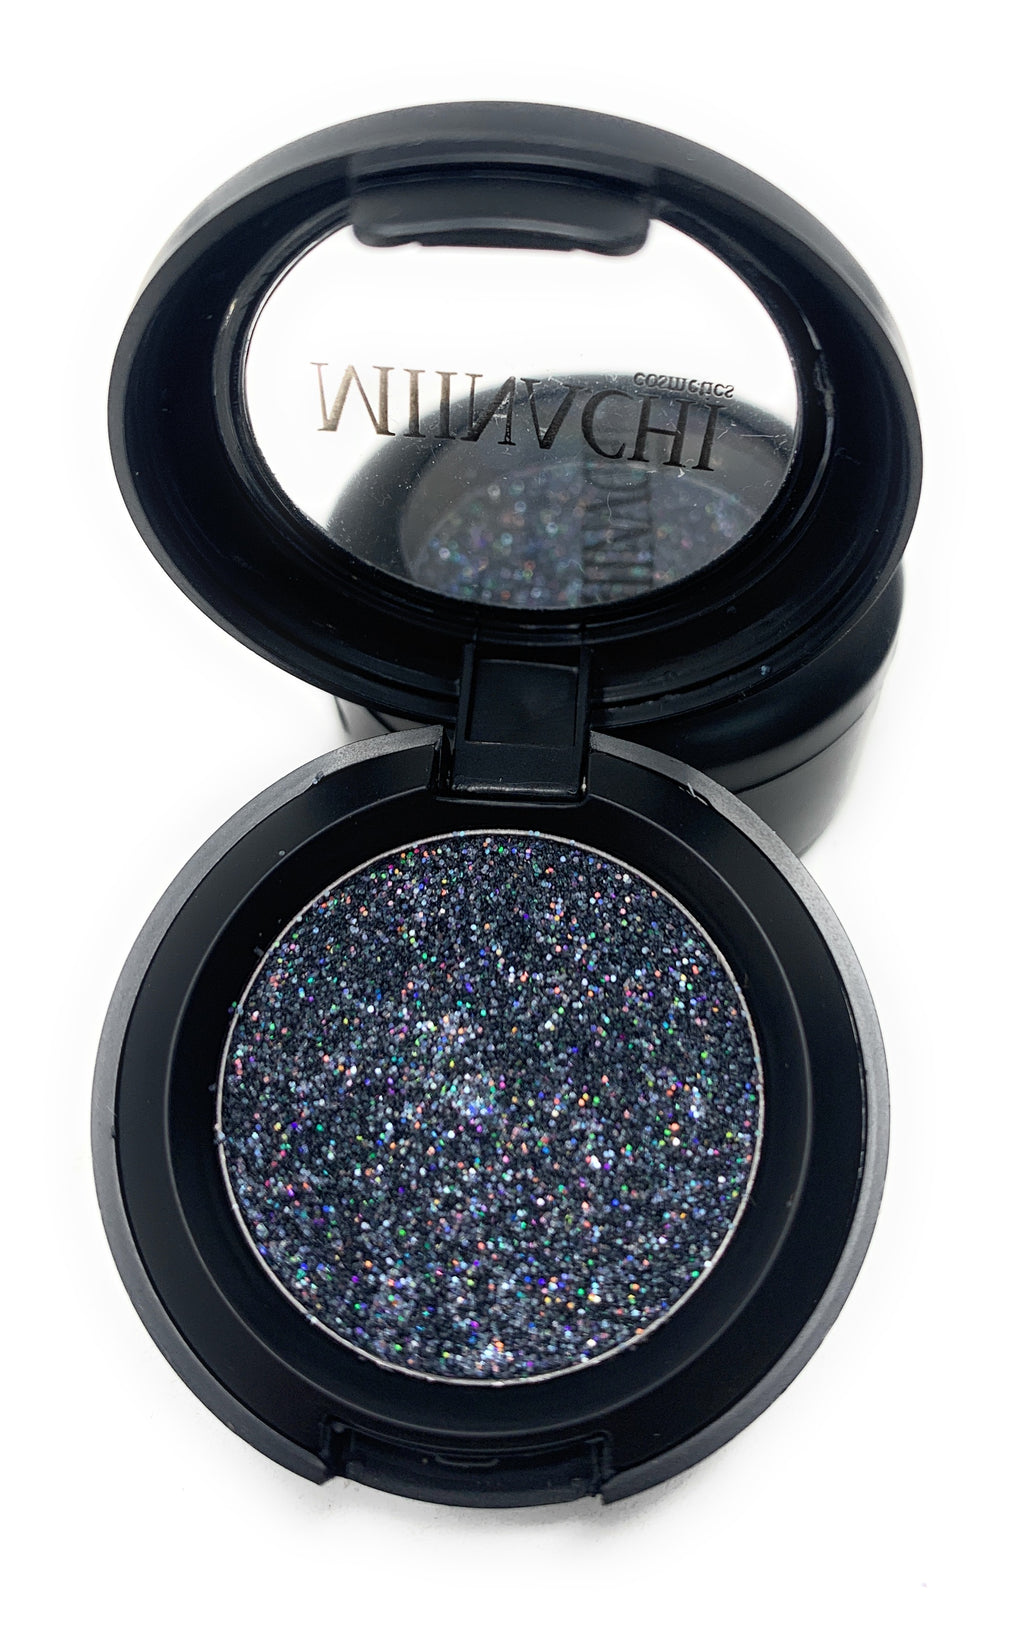 Single Pressed Glitter in the shade Silver, No Glue Needed, In Compact, Pigmented, No Fall Out, Glitter, Cosmetic Grade Glitter